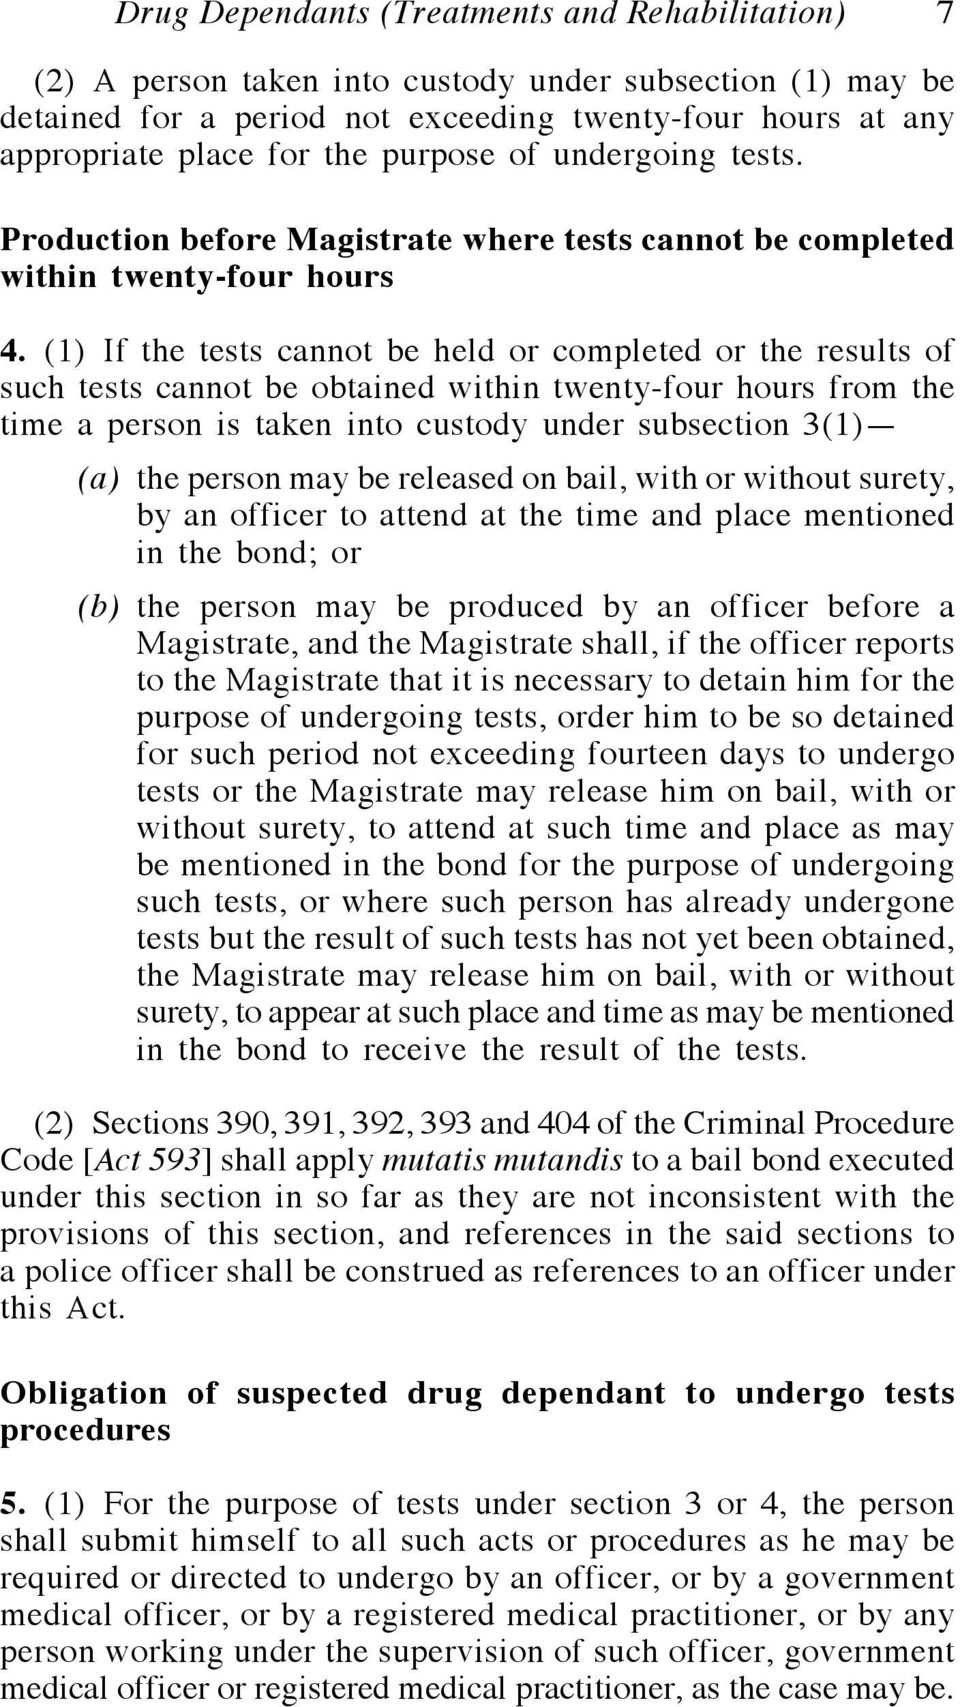 (1) If the tests cannot be held or completed or the results of such tests cannot be obtained within twenty-four hours from the time a person is taken into custody under subsection 3(1) (a) the person